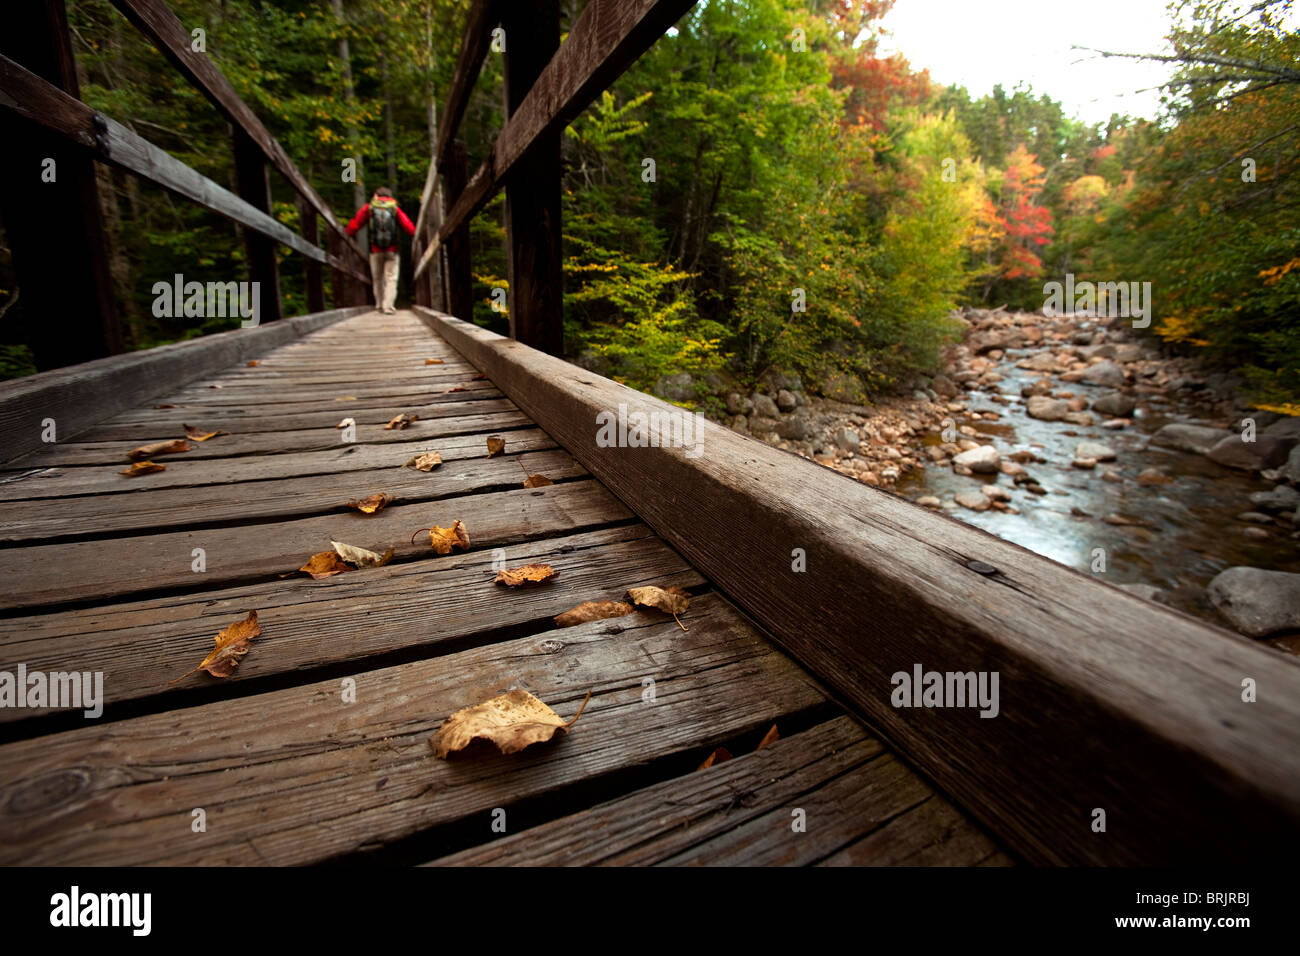 Low angle perspective of one man hiking across a wooden bridge with a stream and fall leaves in view. - Stock Image